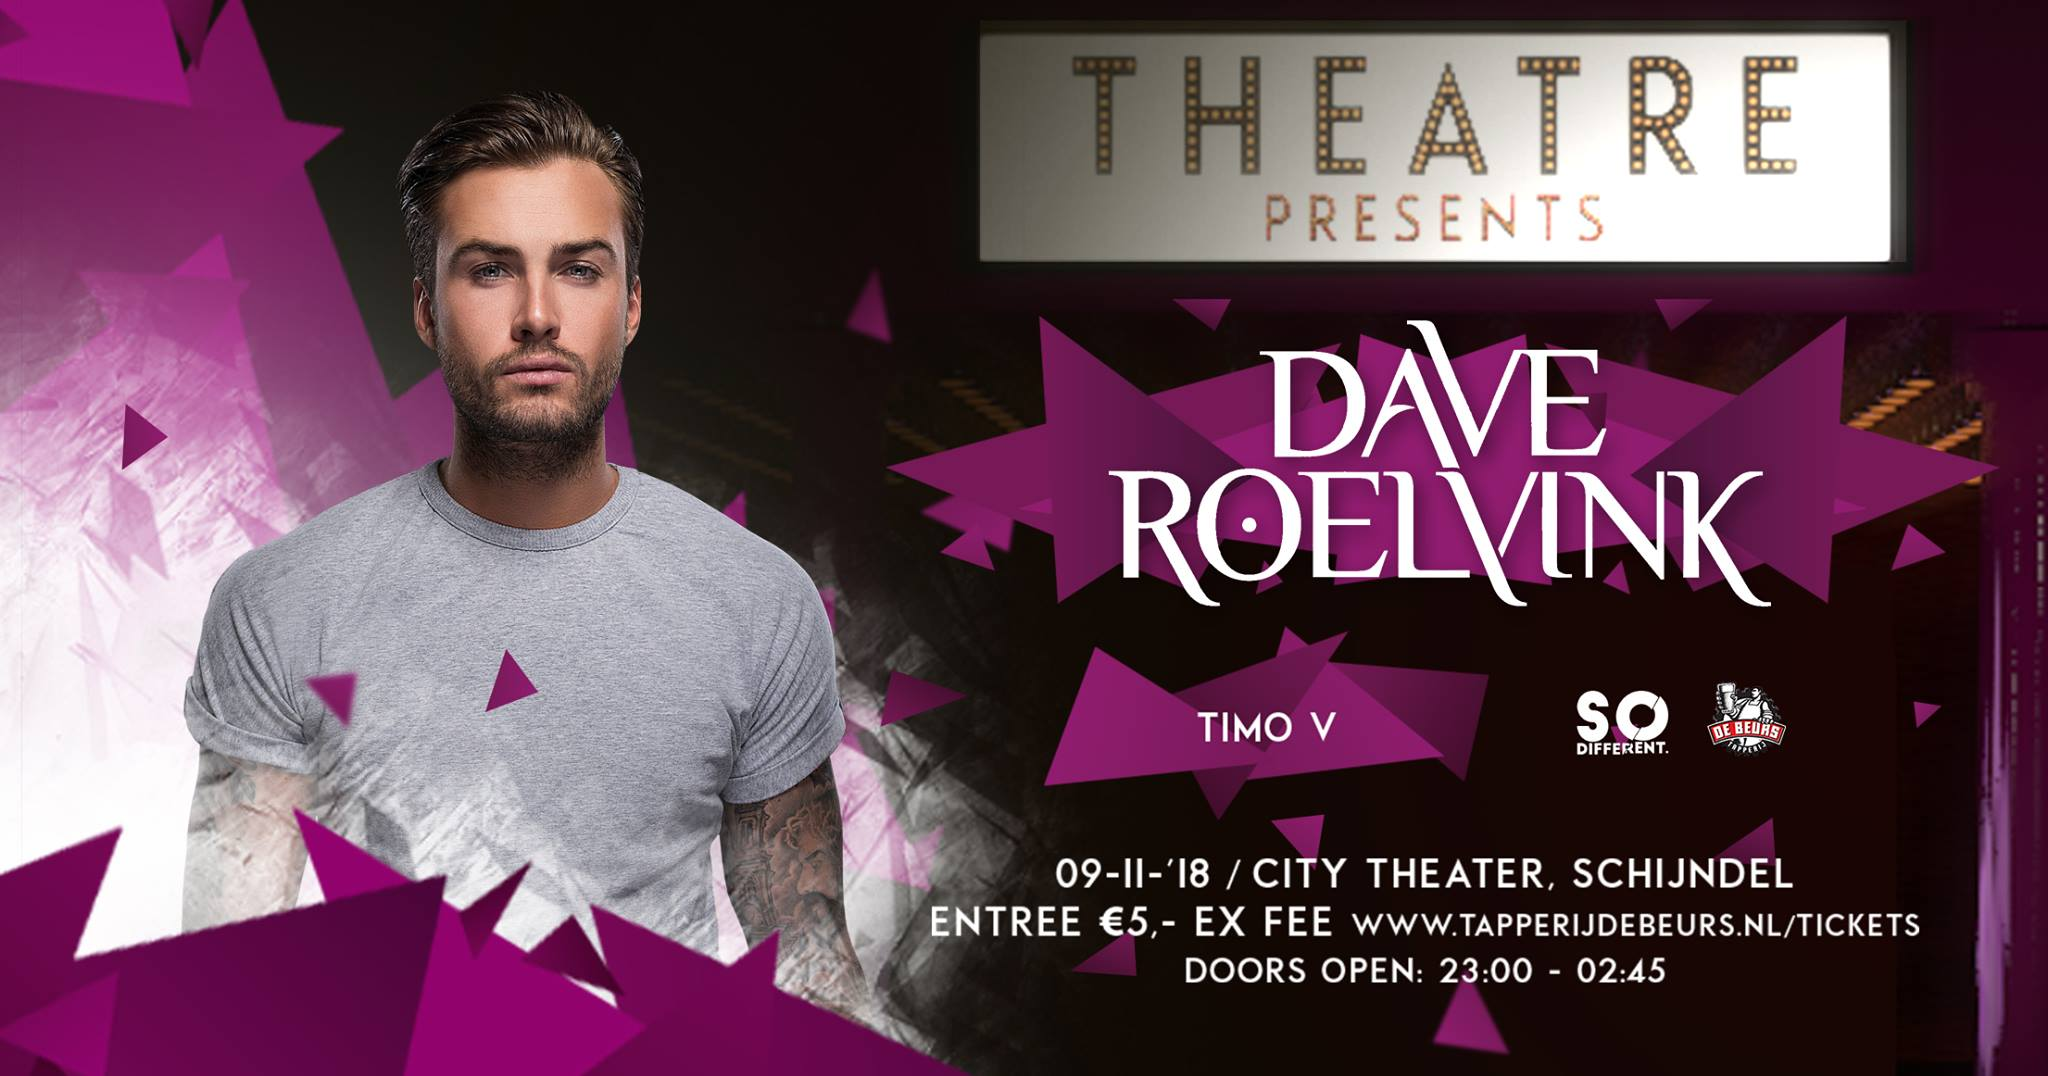 City Theater, Dave Roelvink